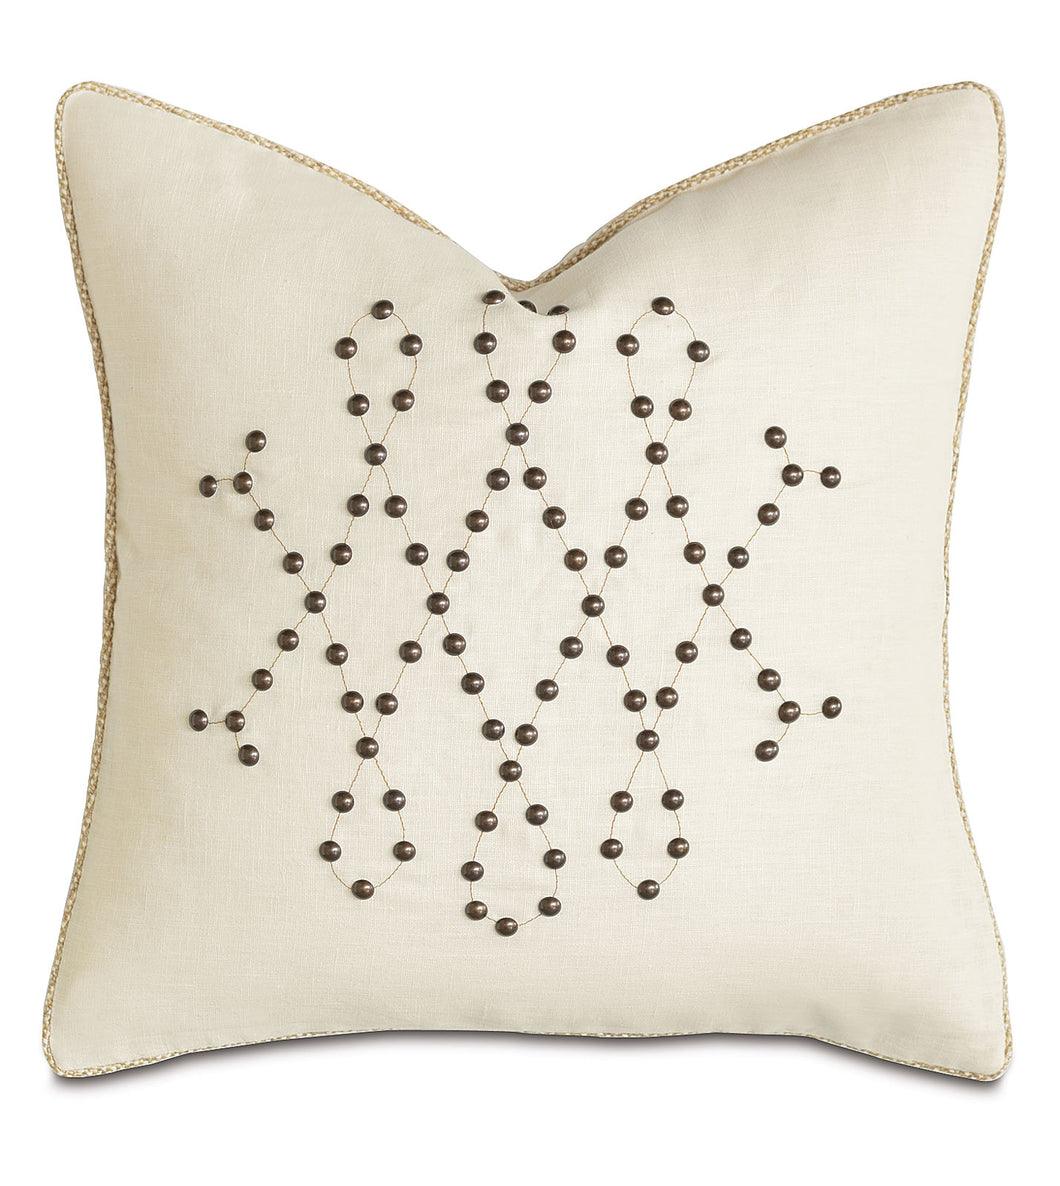 Ivory Mountain Lodge Studded Geometric Linen Throw Pillow 20